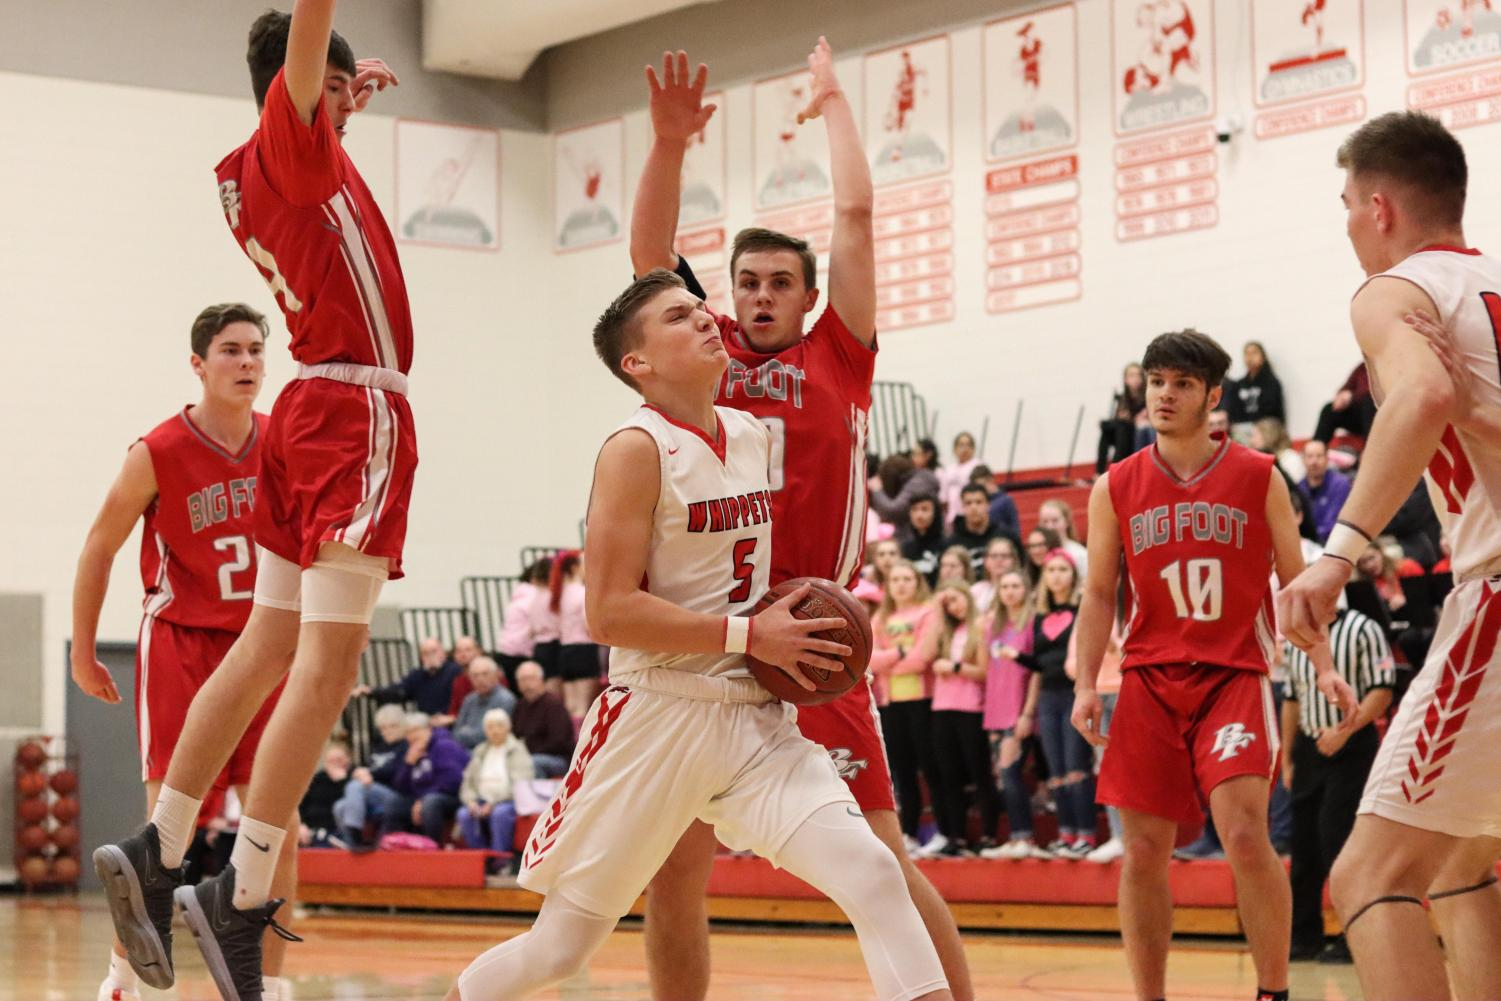 Brock Grosinske drives to the hoop in the game against Big Foot. The Whippets got the win - their second of the week.